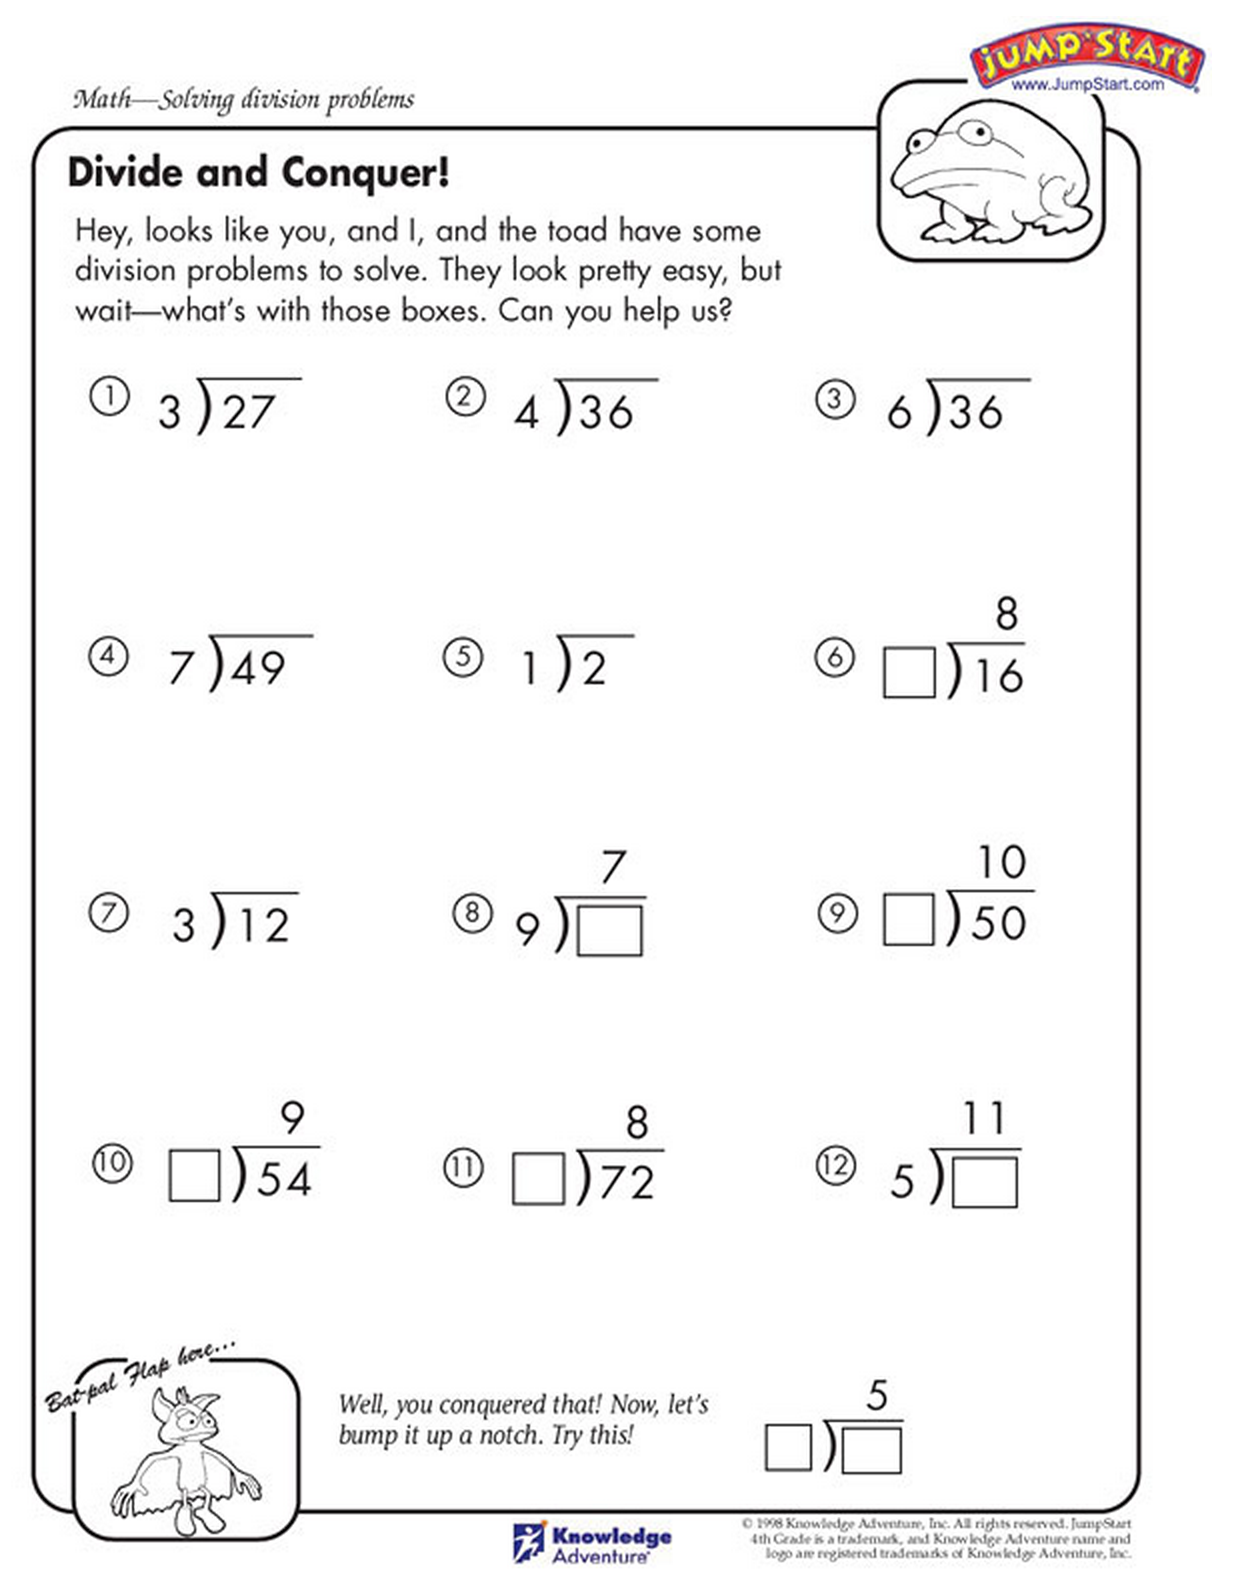 hight resolution of Help mister toad solve these division problems!   Math practice worksheets